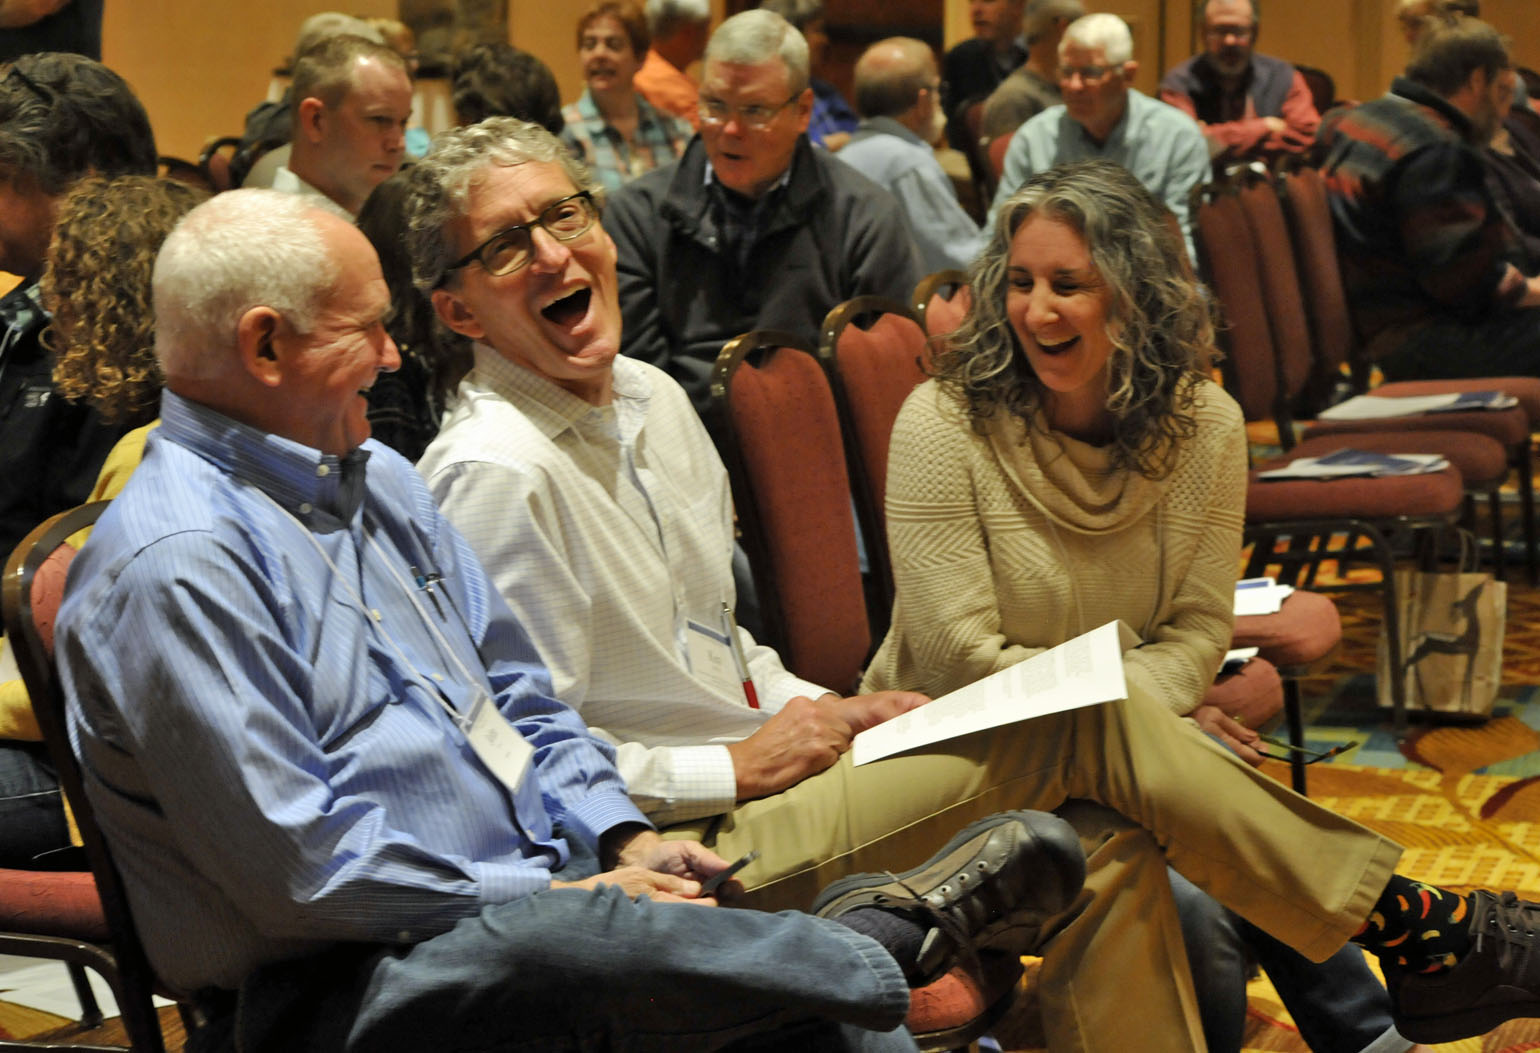 Clergy gather at the Annual Clergy Conference. Photo courtesy the Rev. Brian Winter